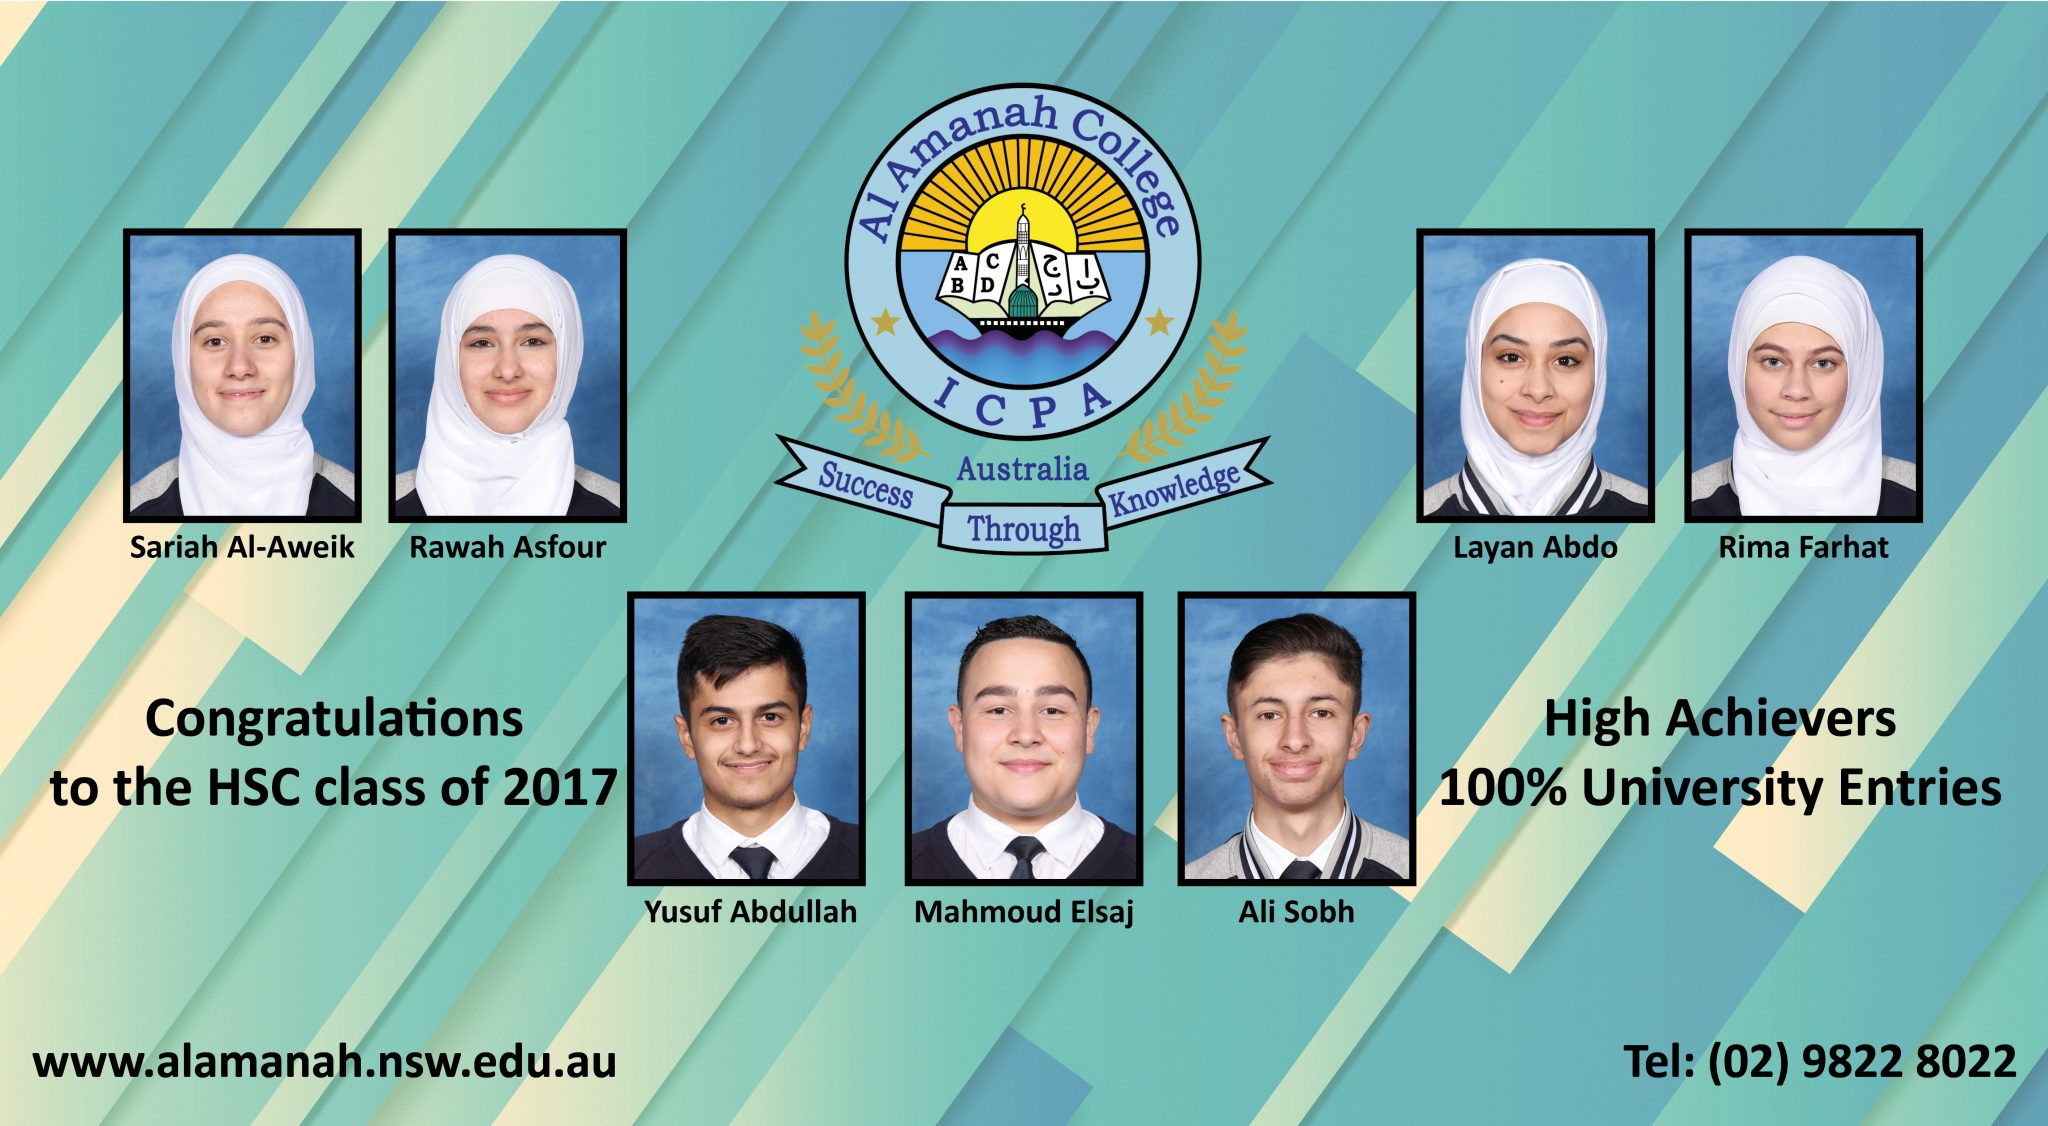 HSC Class of 2017 – Outstanding Results